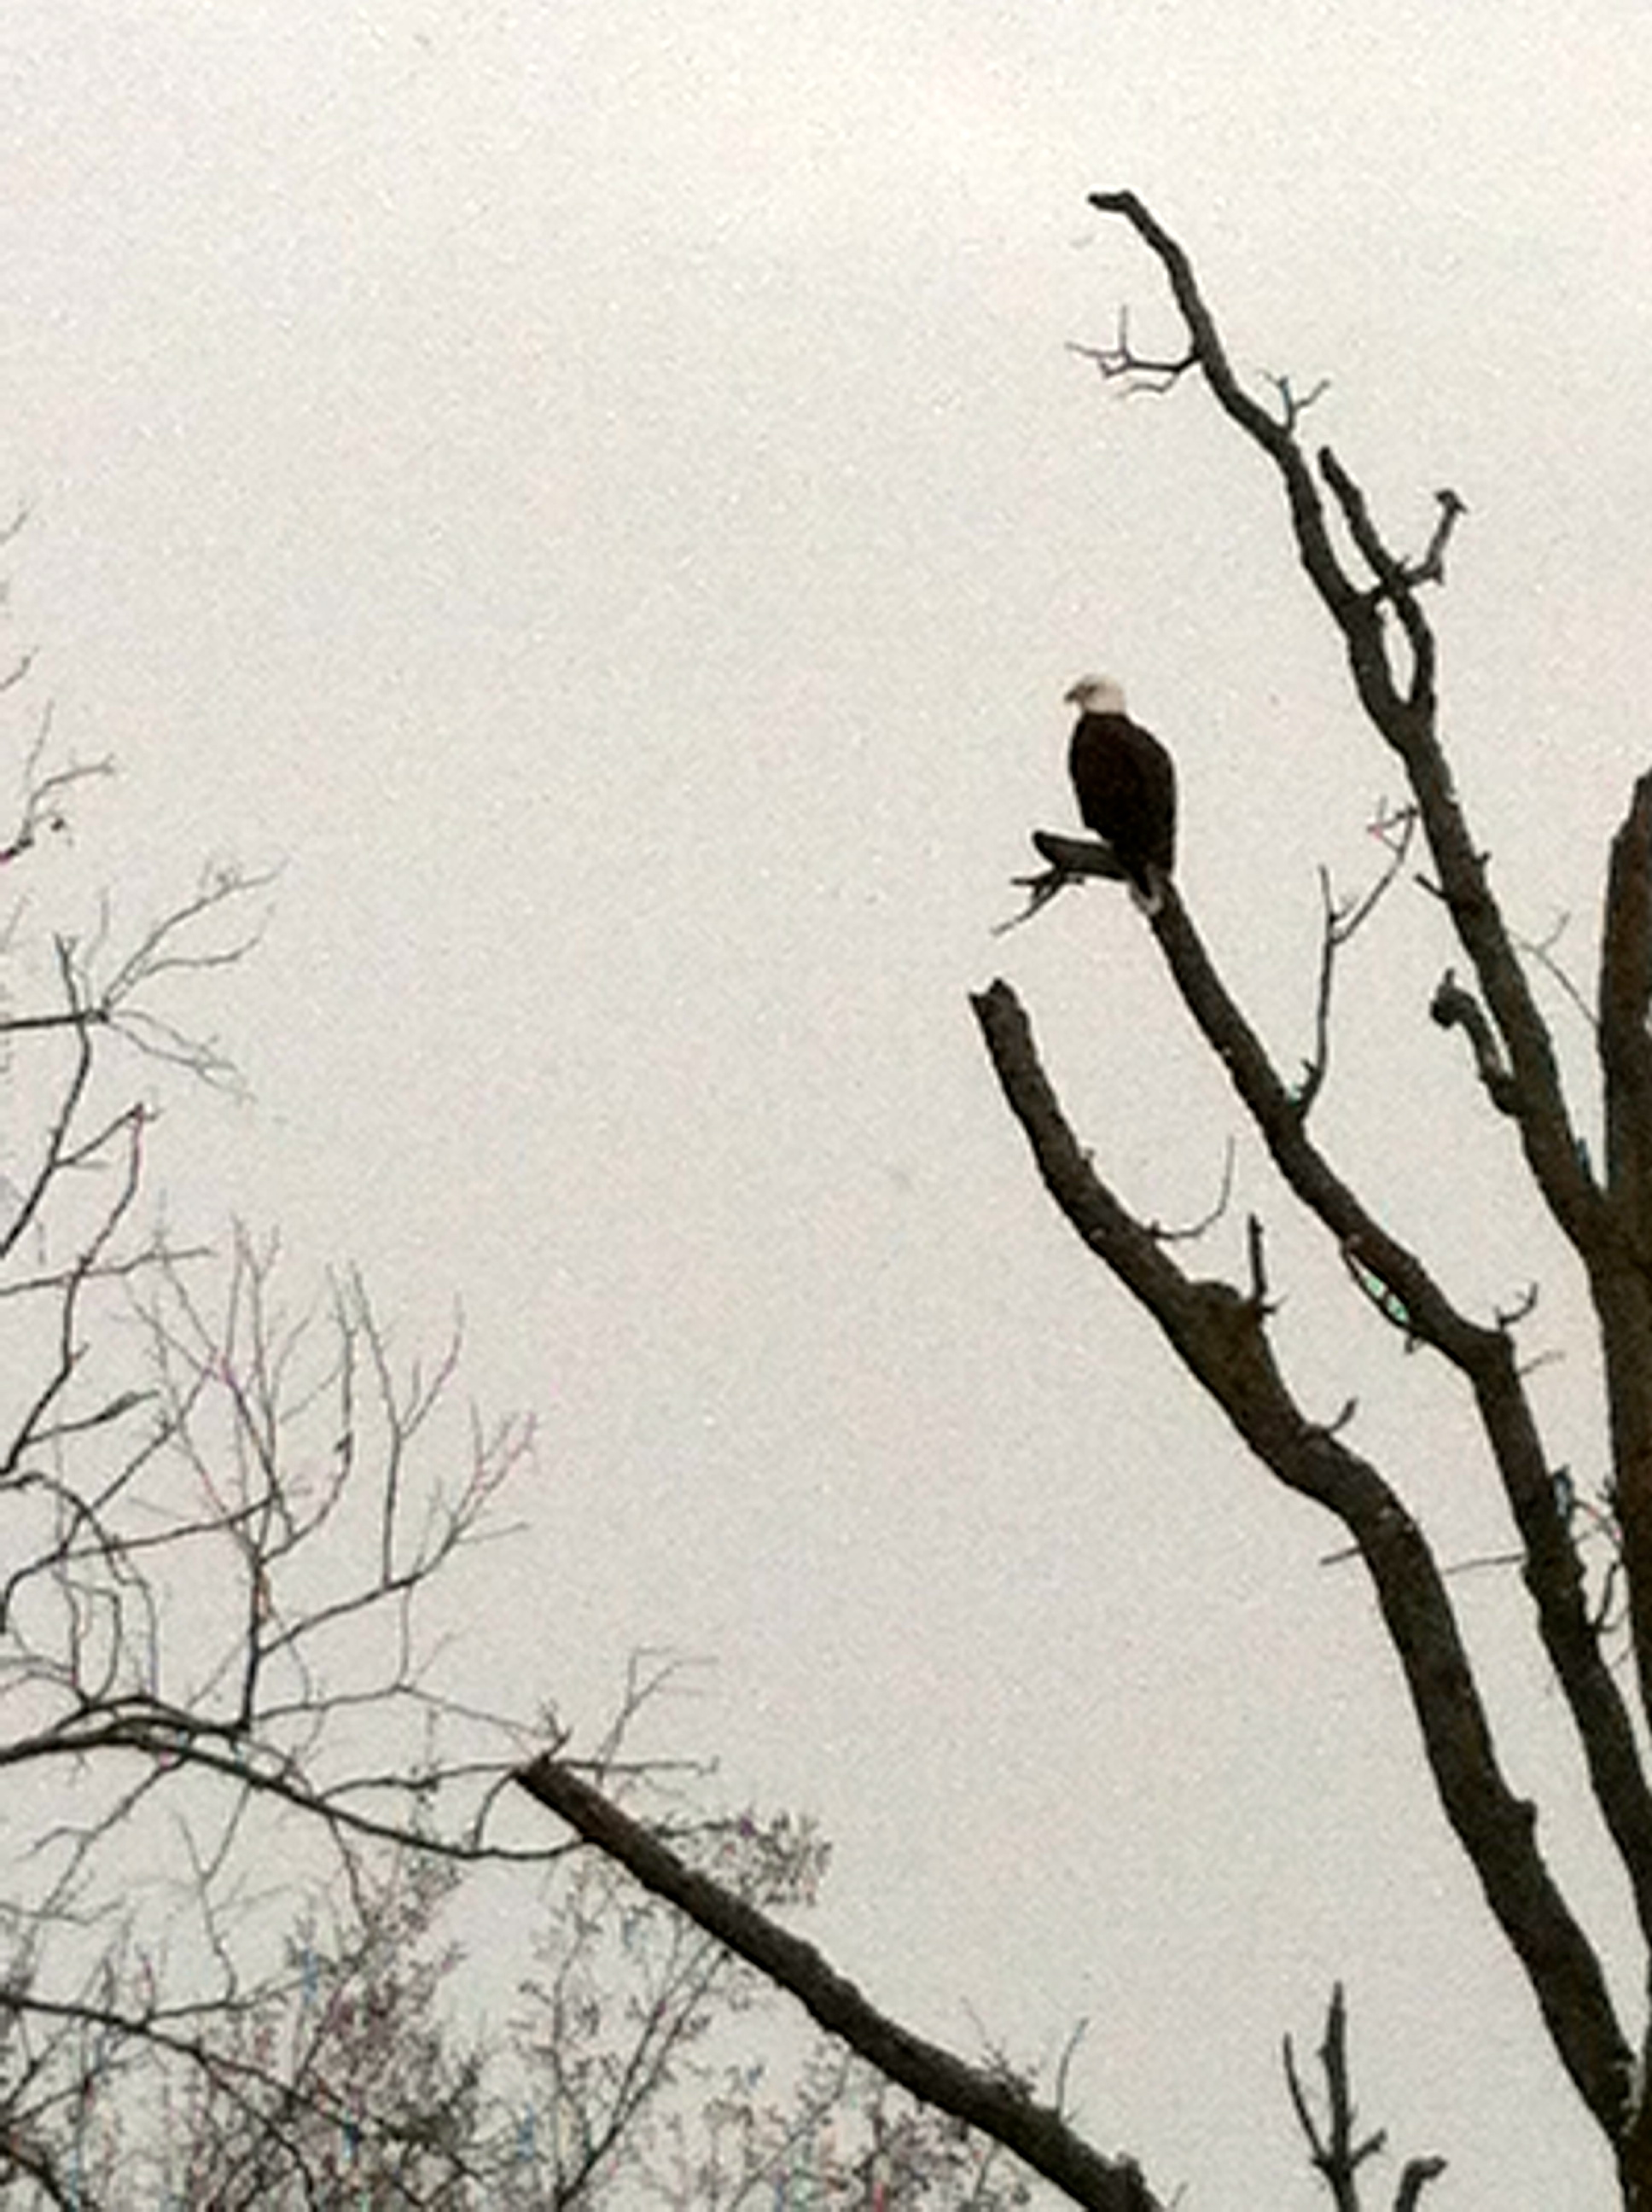 bald eagle in bentonville